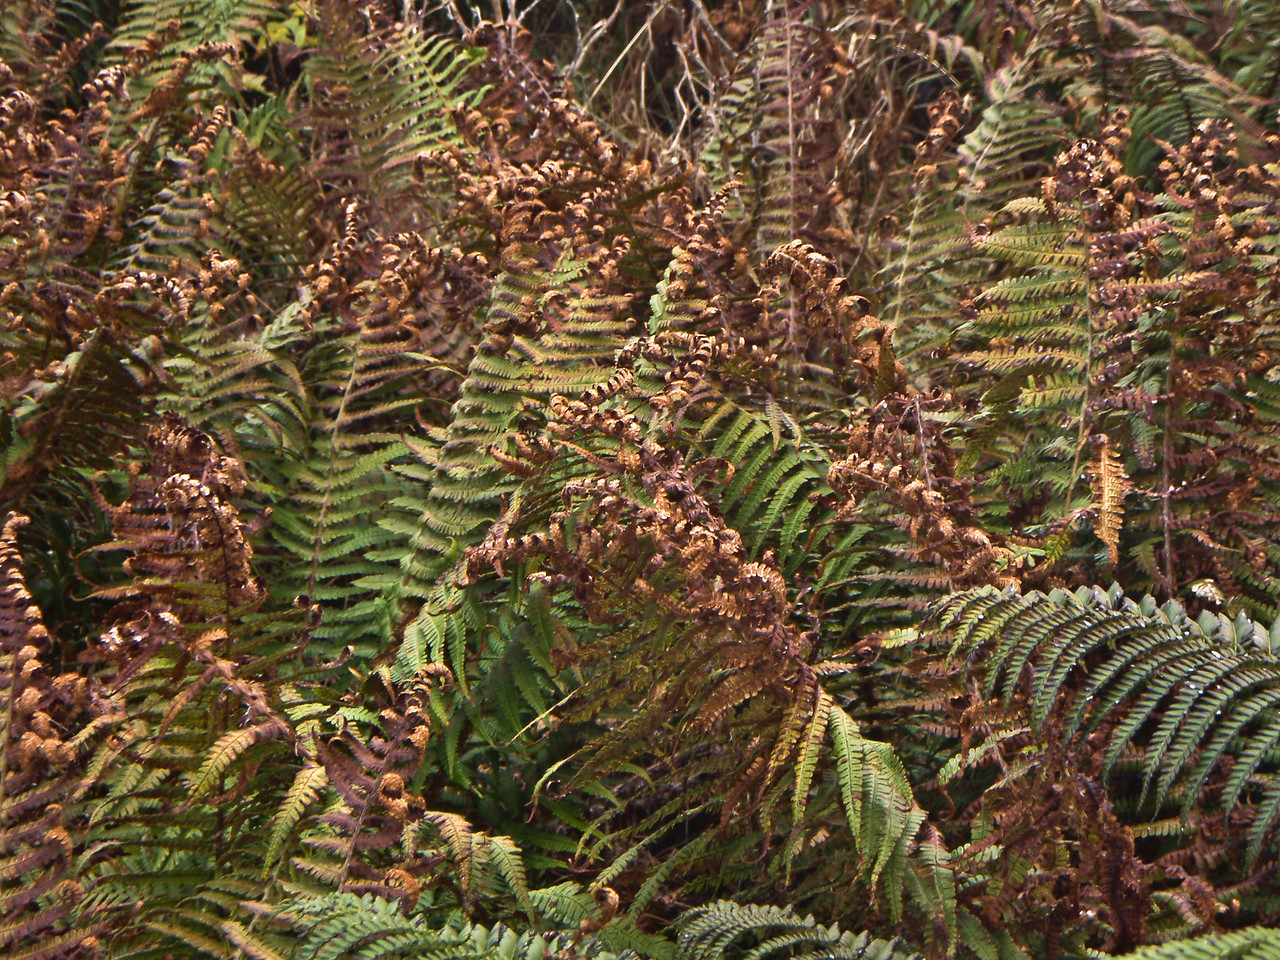 """Dryopteris sp. (East Maui)This image is licensed under the Creative Commons Attribution-NonCommercial 3.0 Unported license.  You may share and adapt this work, but only with attribution (""""by Hank L. Oppenheimer"""") and only for non-commercial purposes unless permission is obtained from the copyright-holder (contact webmaster@hear.org)."""